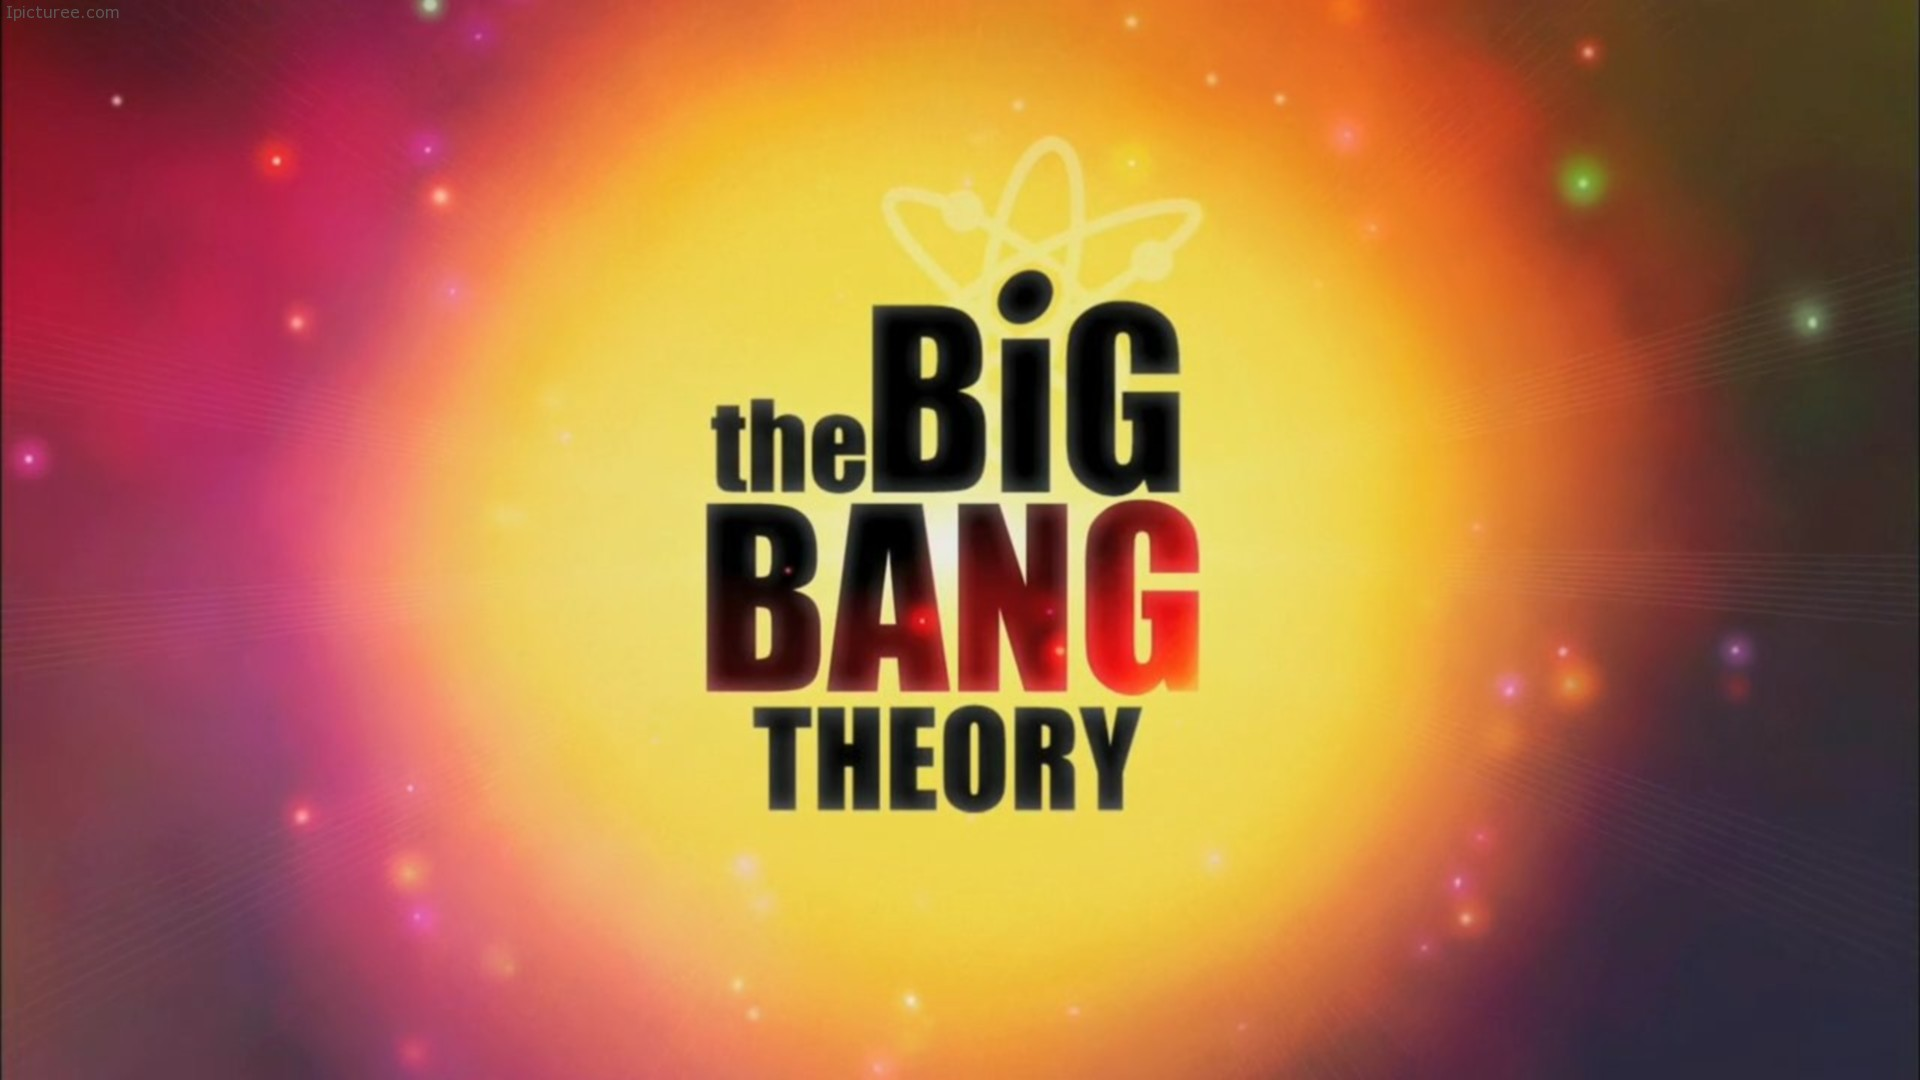 Big Bang Theory HD Wallpaper